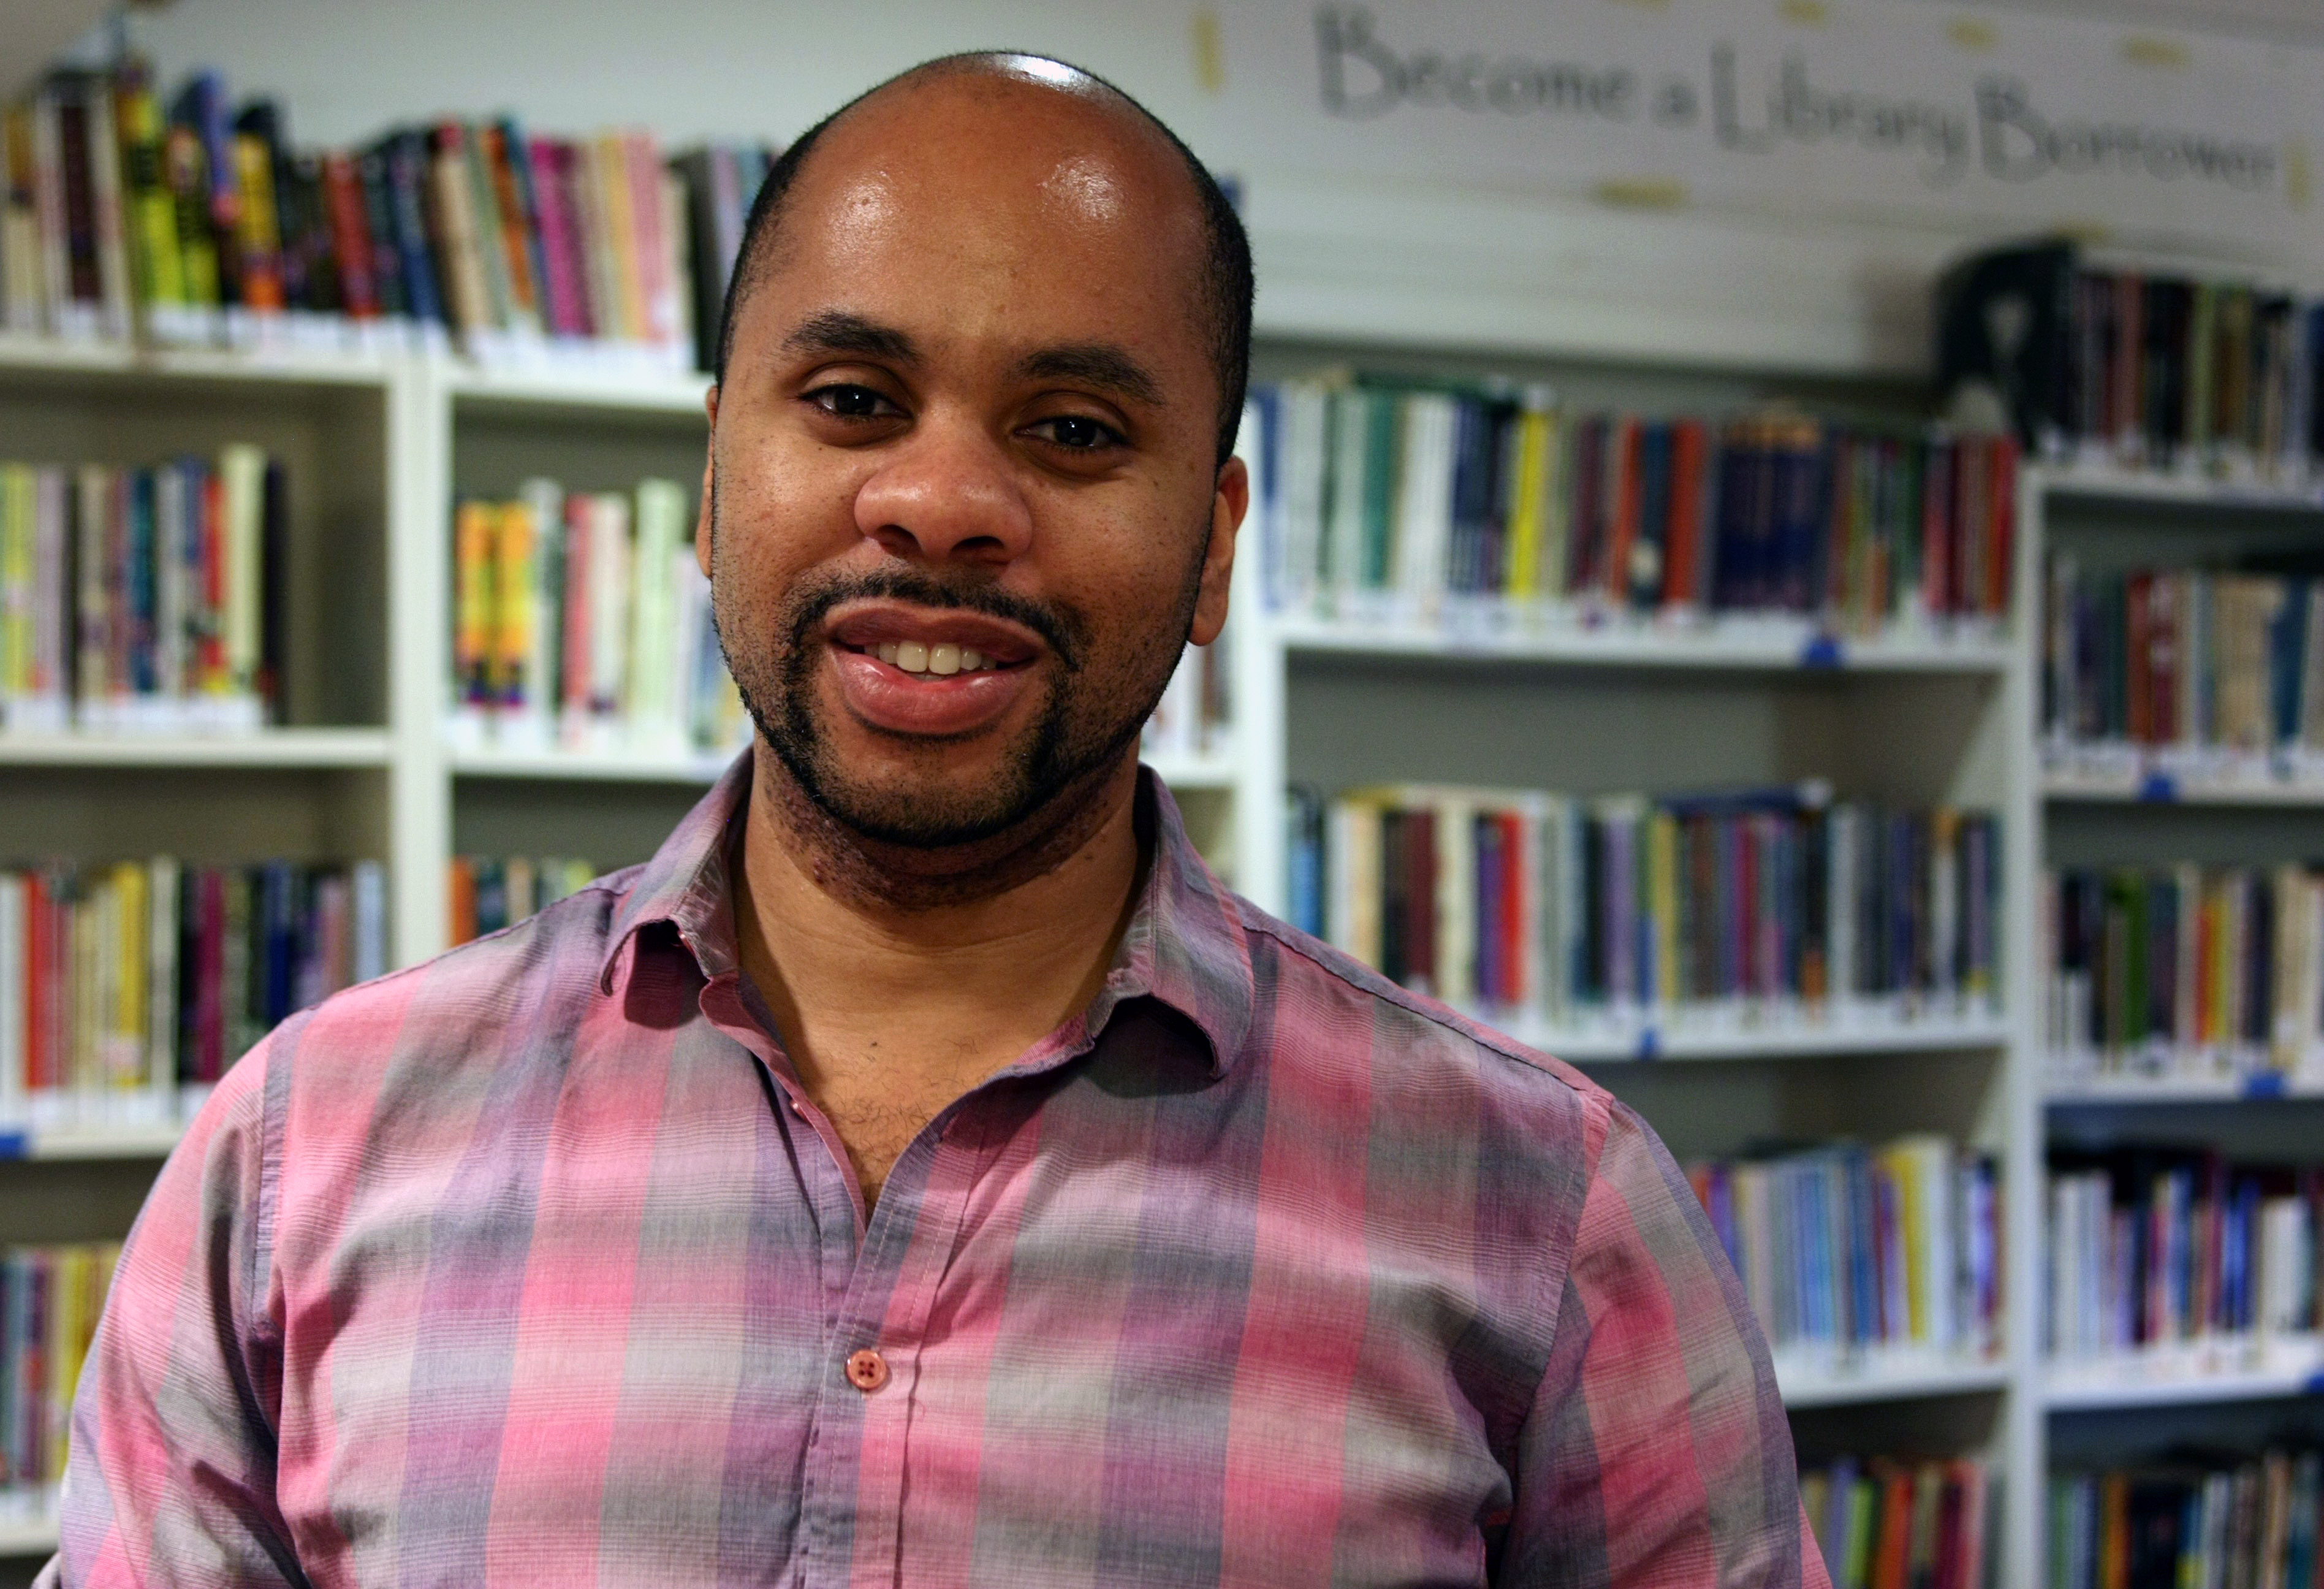 Eric Thomas, program director at the William Way LGBT Community Center, sits down in the center's library to talk about the papal visit in Philadelphia. The center will be holding a multitude of activities for the LGBT community during this time to avoid the members feeling alienated.